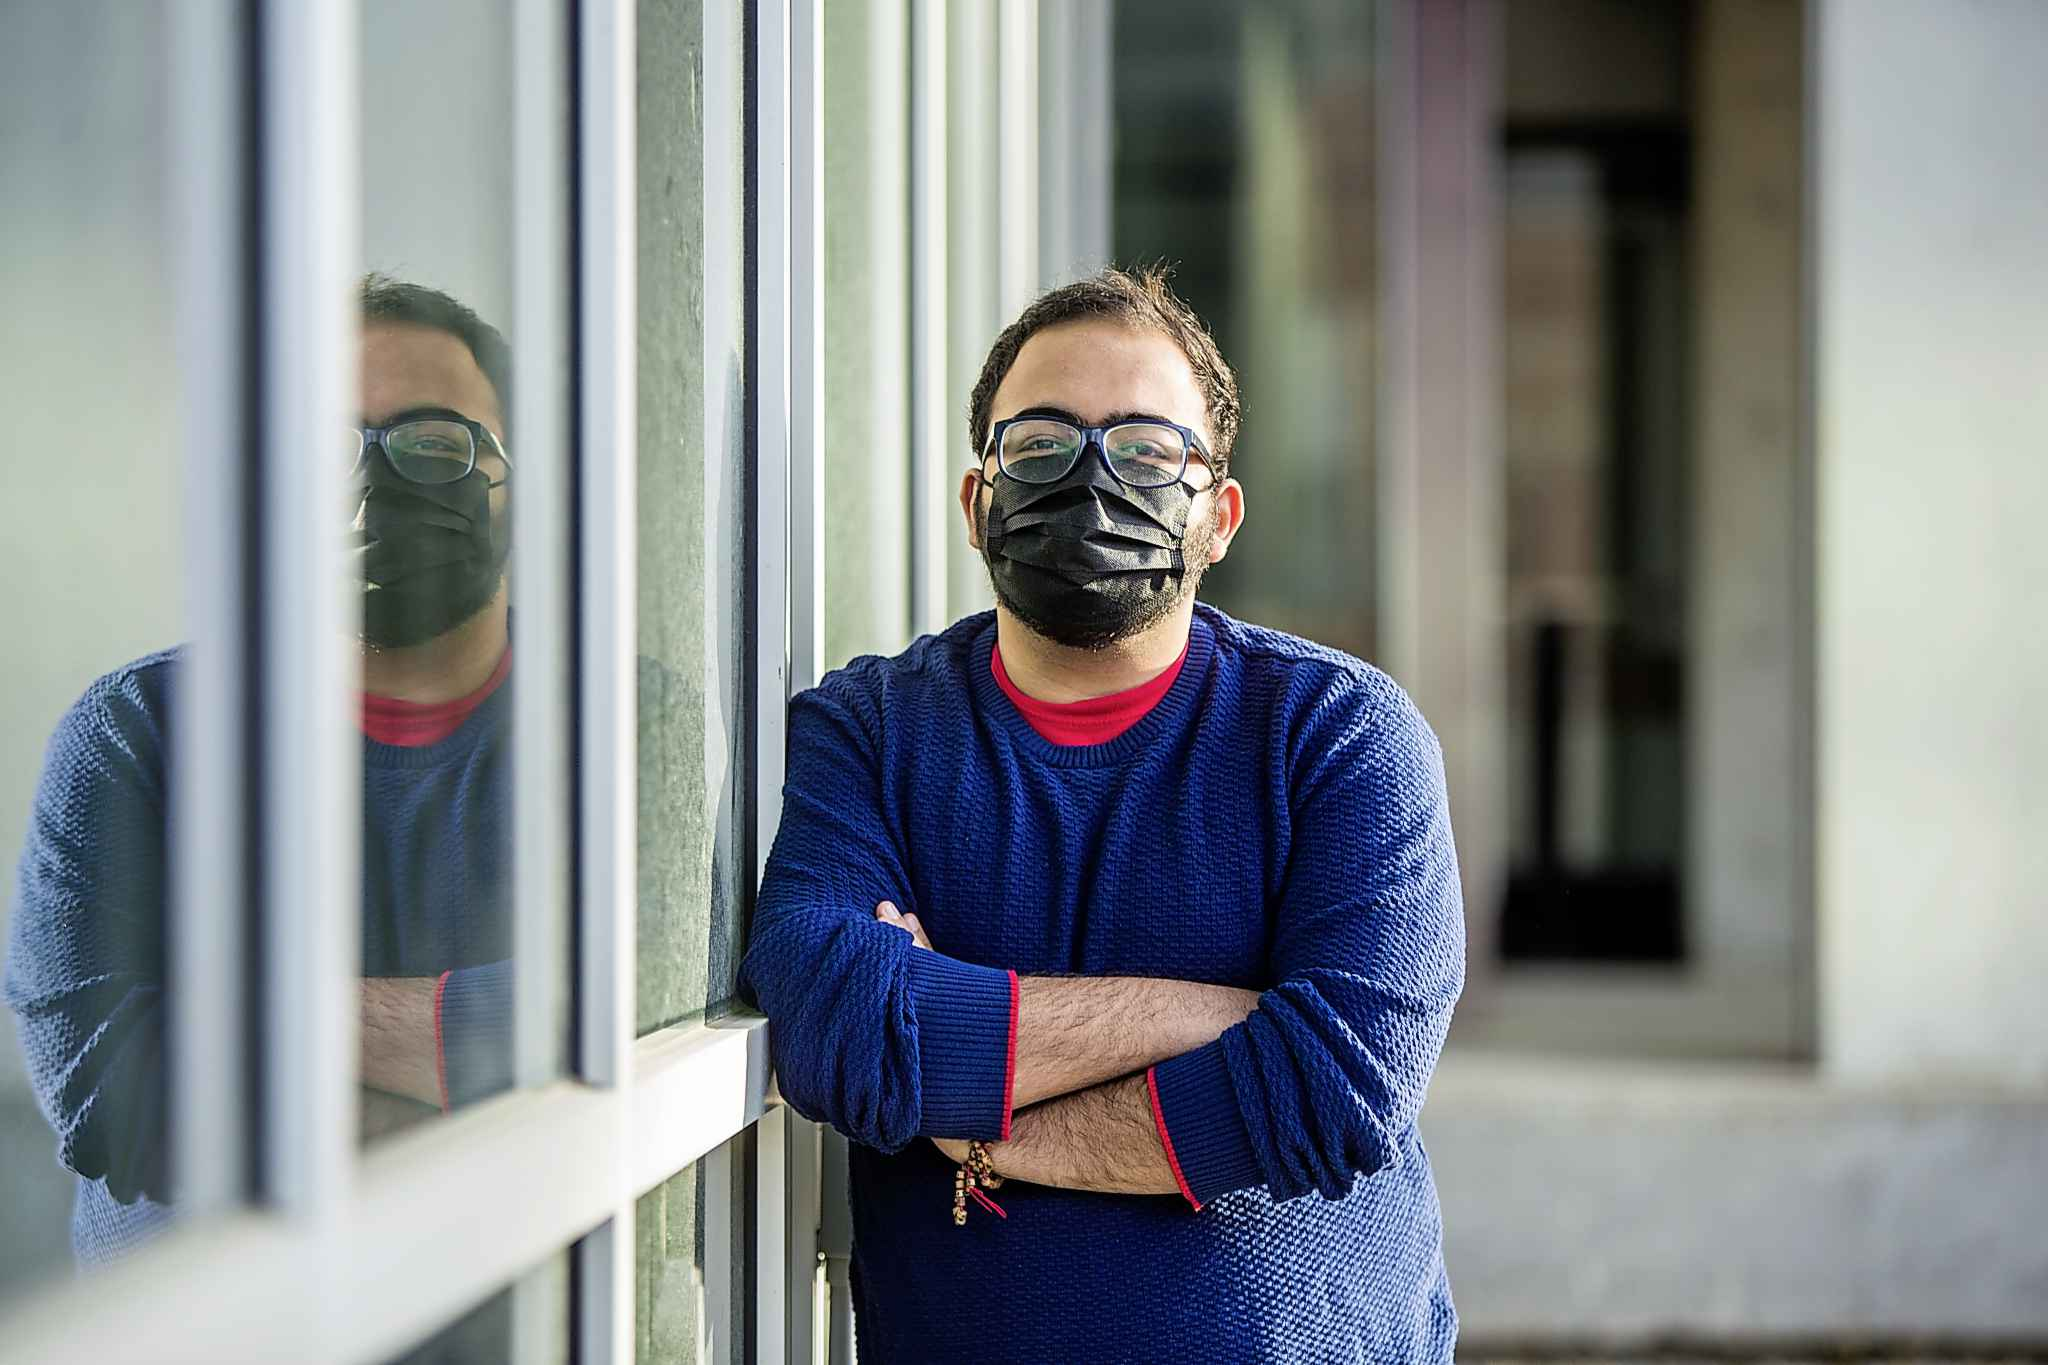 Nik Kapoor and other students in residence can see the light at the end of the semester's tunnel: four months into a school year unlike any other, final exams are nearing.